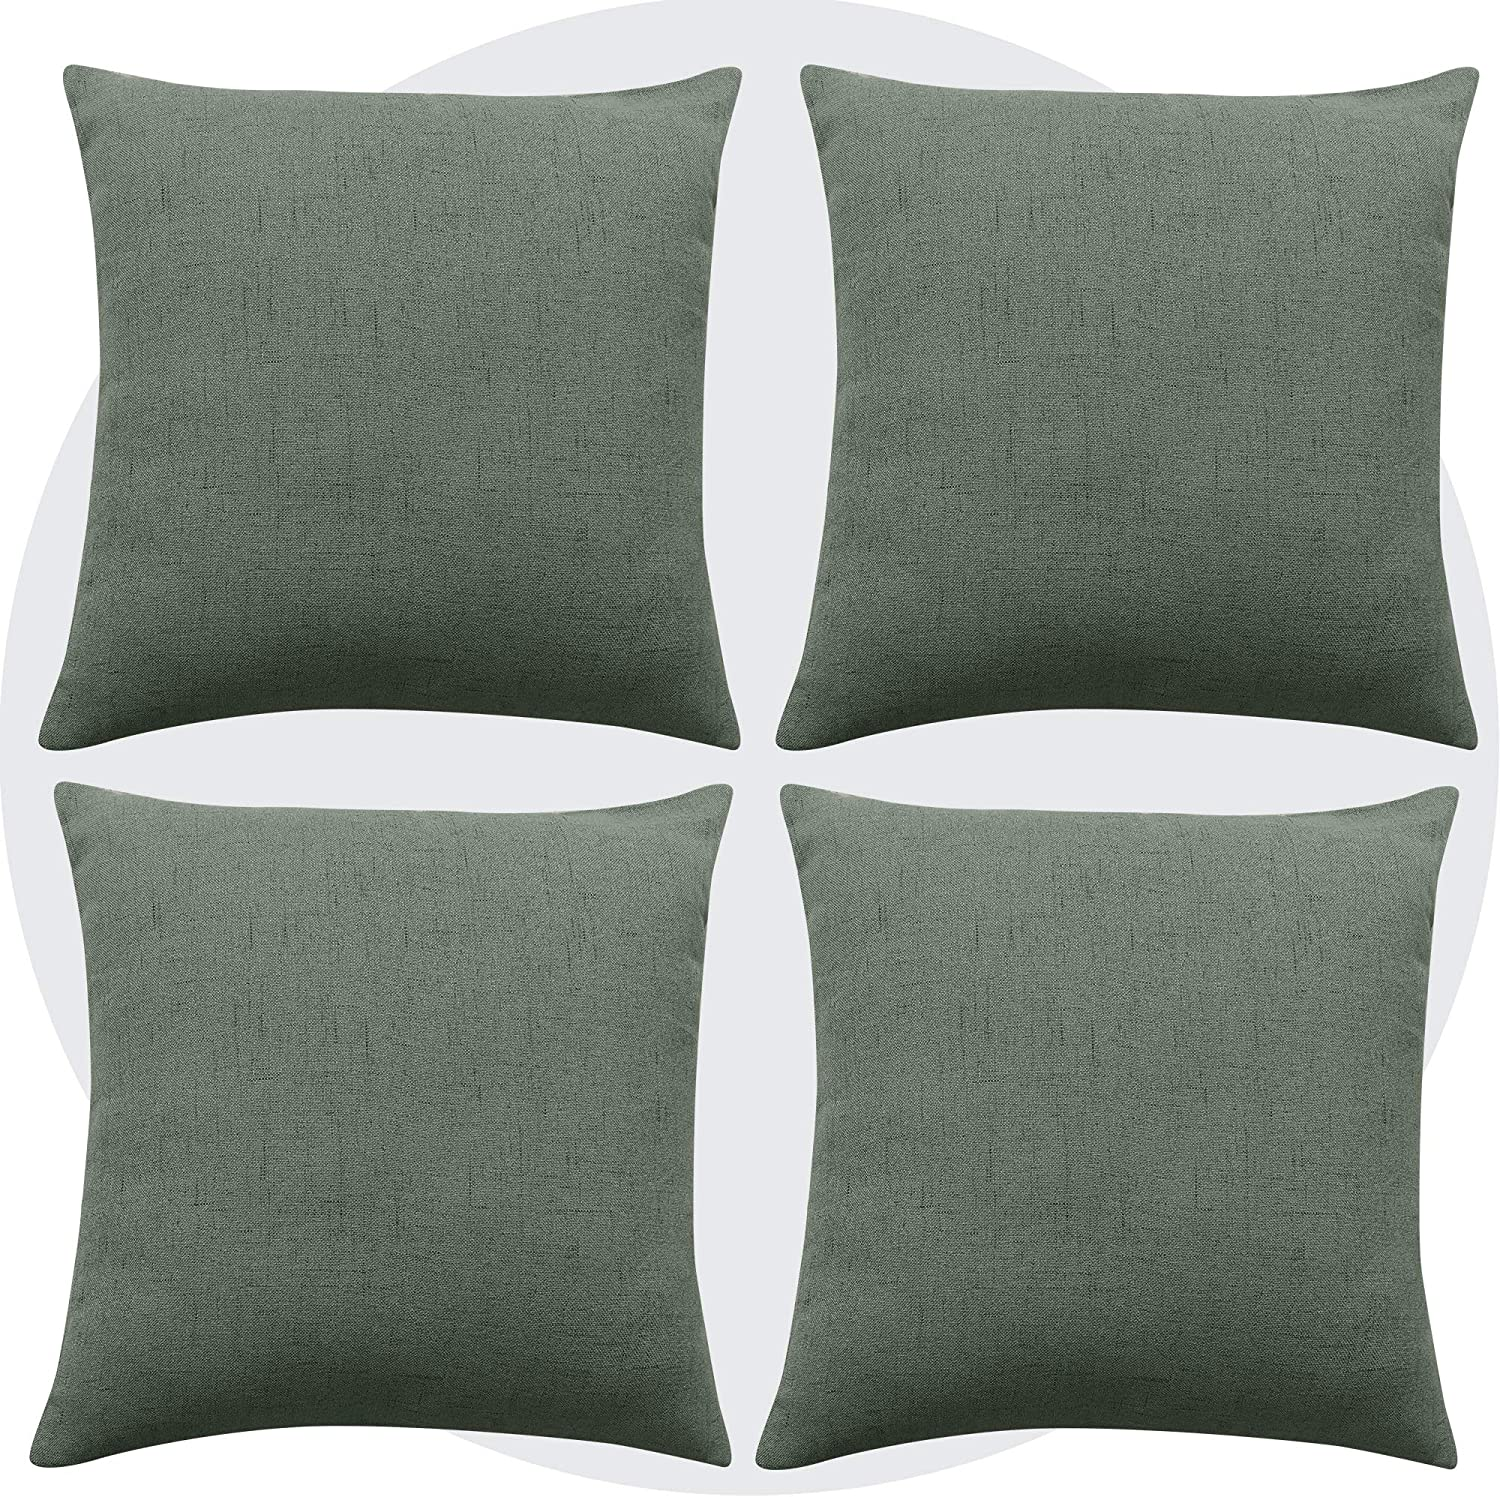 Deconovo Pillow Covers Faux Linen Cushion Cover Solid Blank Pillowcases for Living Room Throw Pillow 22 x 22 Inch Forest Green Set of 4 No Pillow Insert